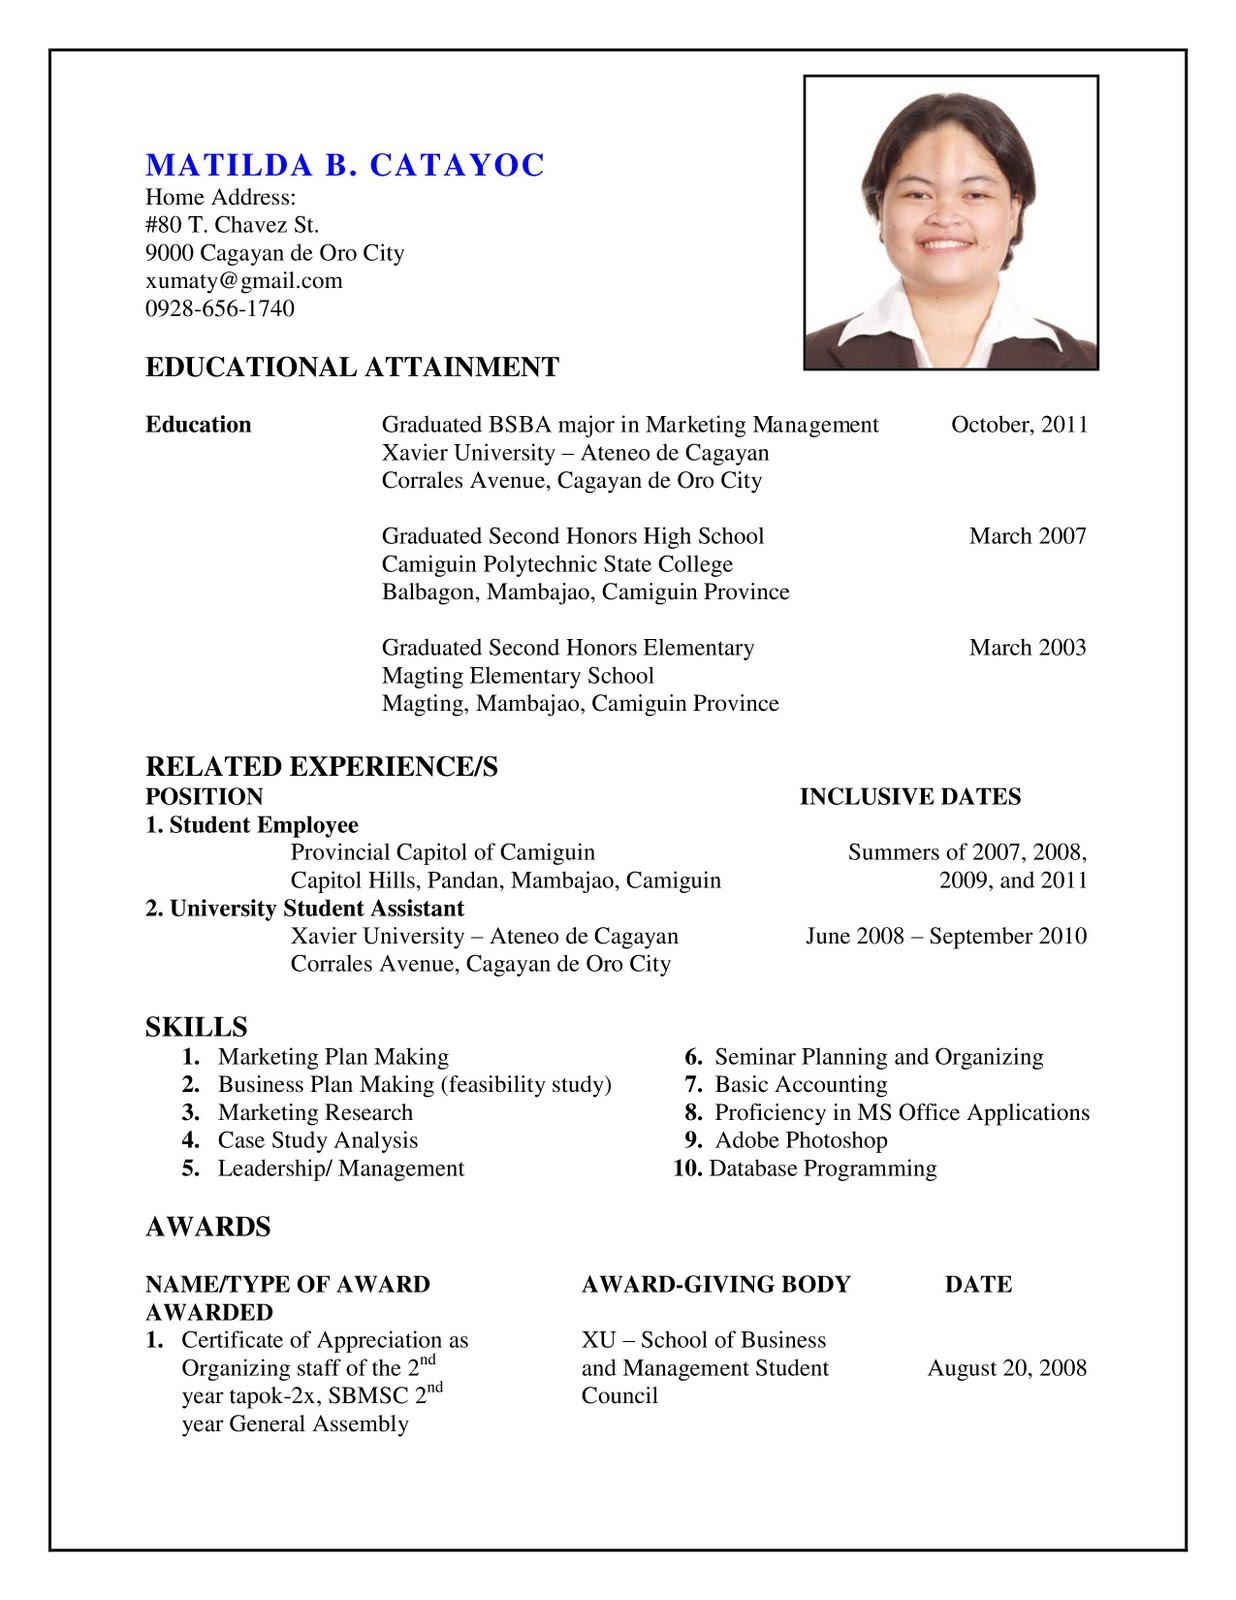 Best Resumes And Templates For Your Business   Ggec.co  How Do I Create A Resume